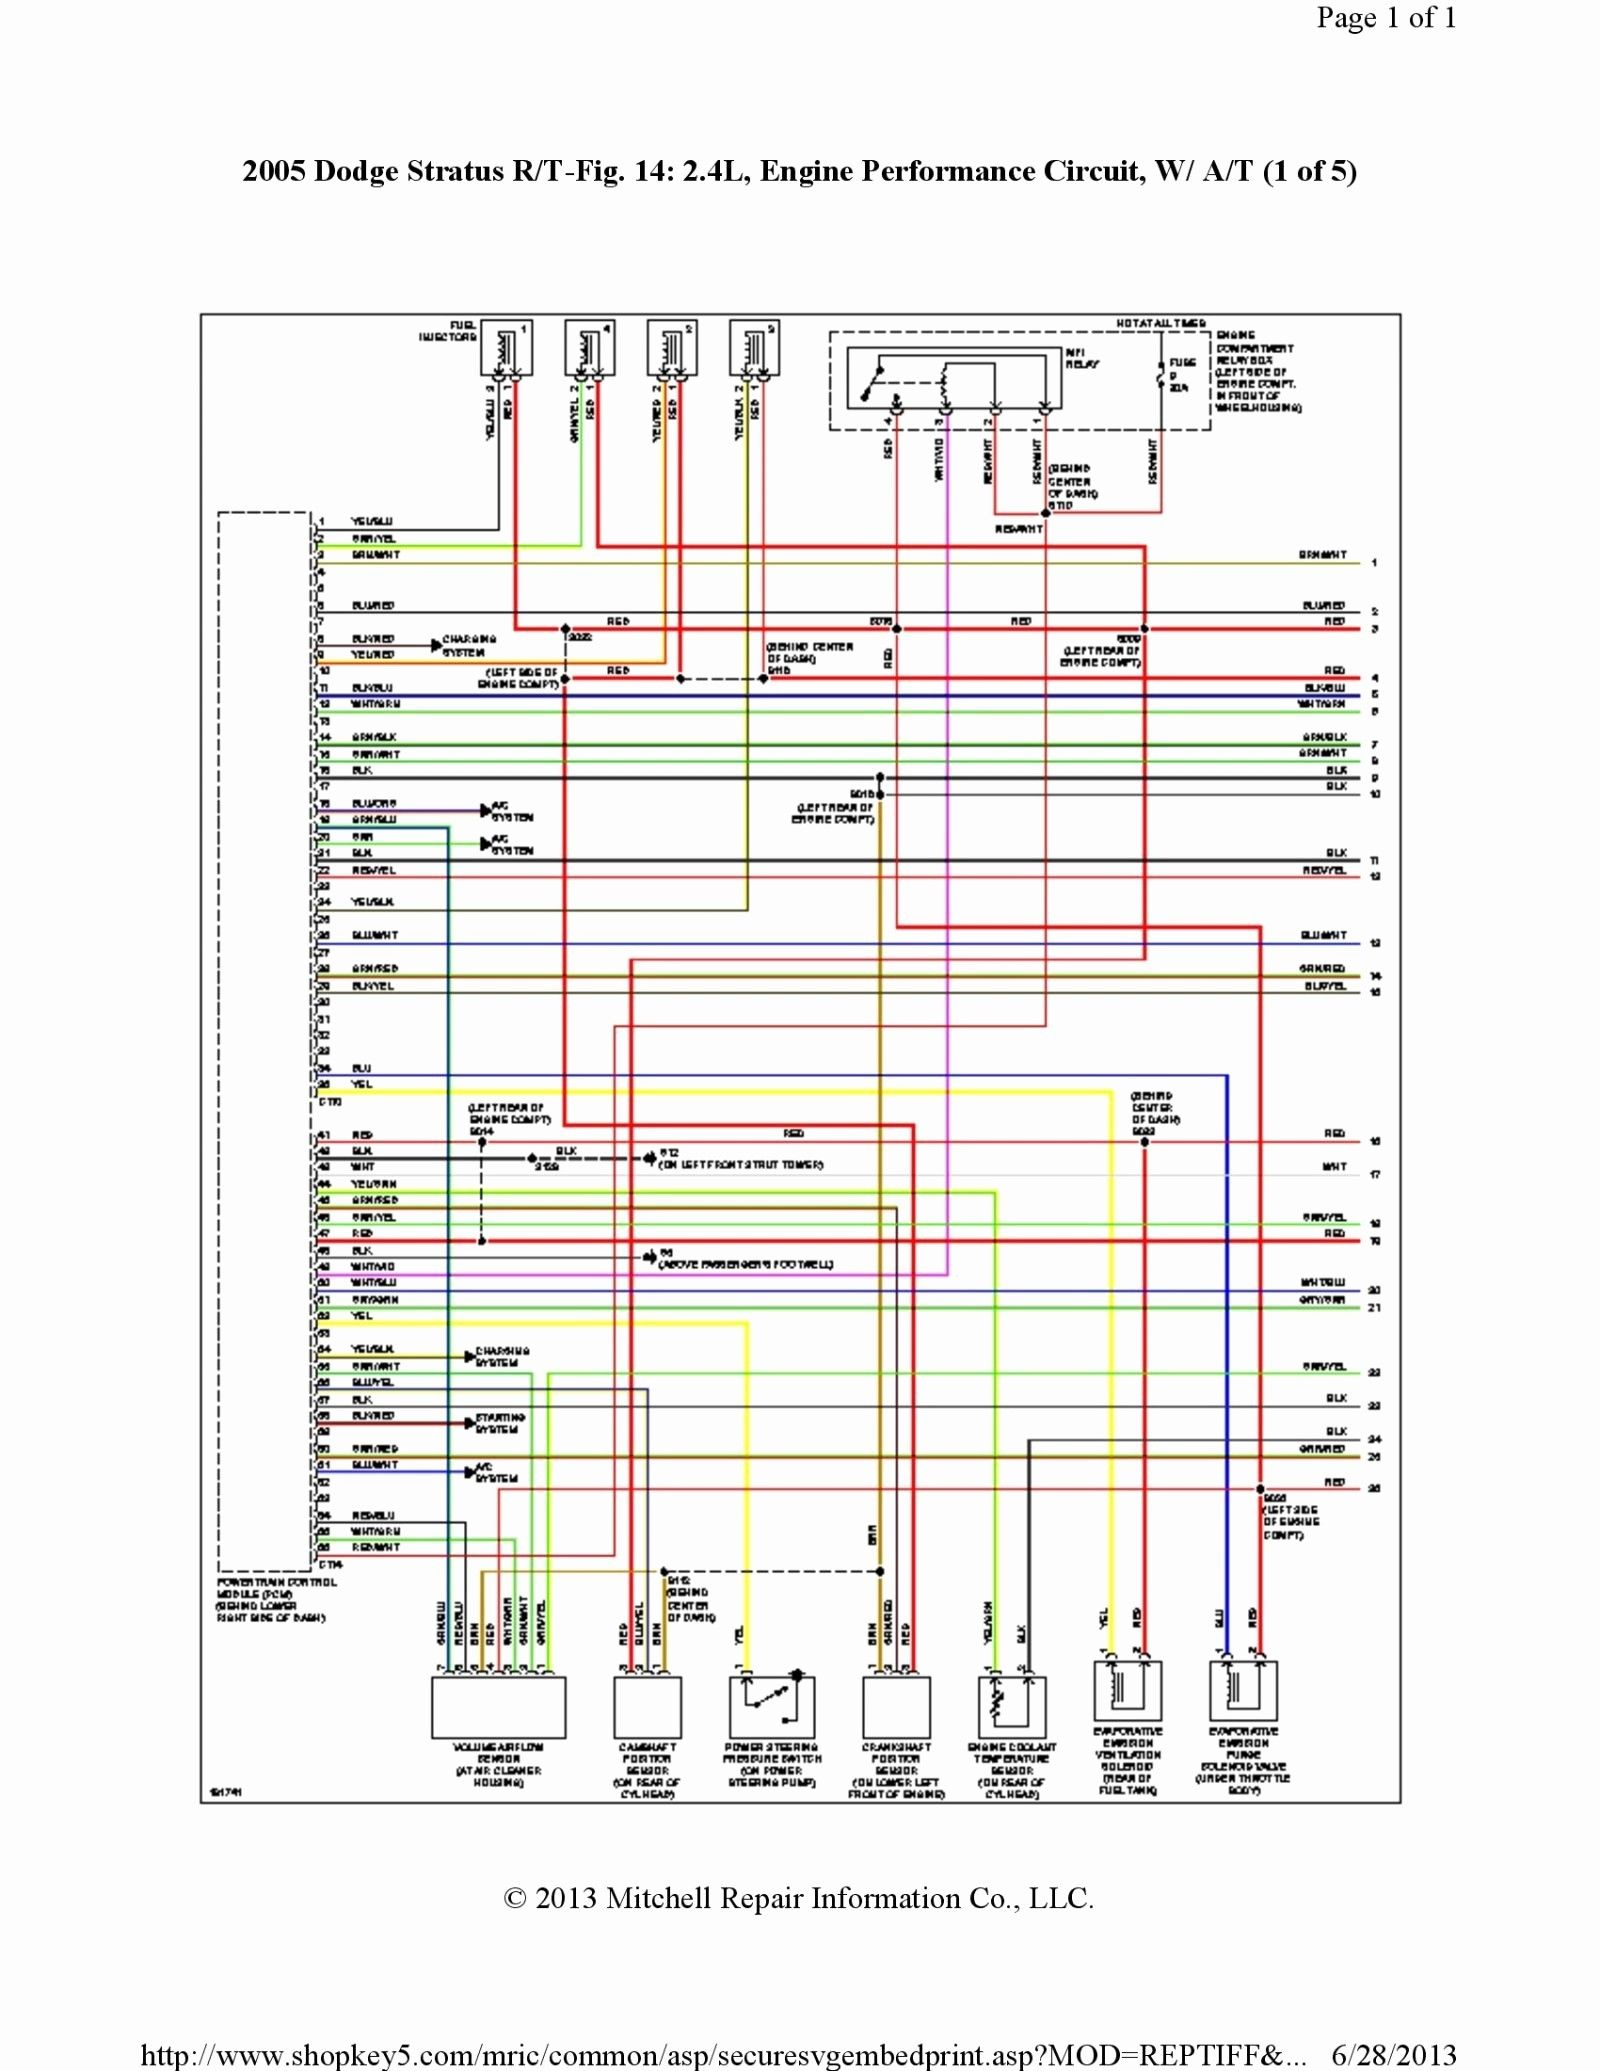 [WQZT_9871]  Wiring Diagram For 2002 Dodge Ram 2500 - Computer Motherboard Wiring Diagram  Symbols for Wiring Diagram Schematics | 2005 Dodge 2500 Wiring Diagram |  | Wiring Diagram Schematics